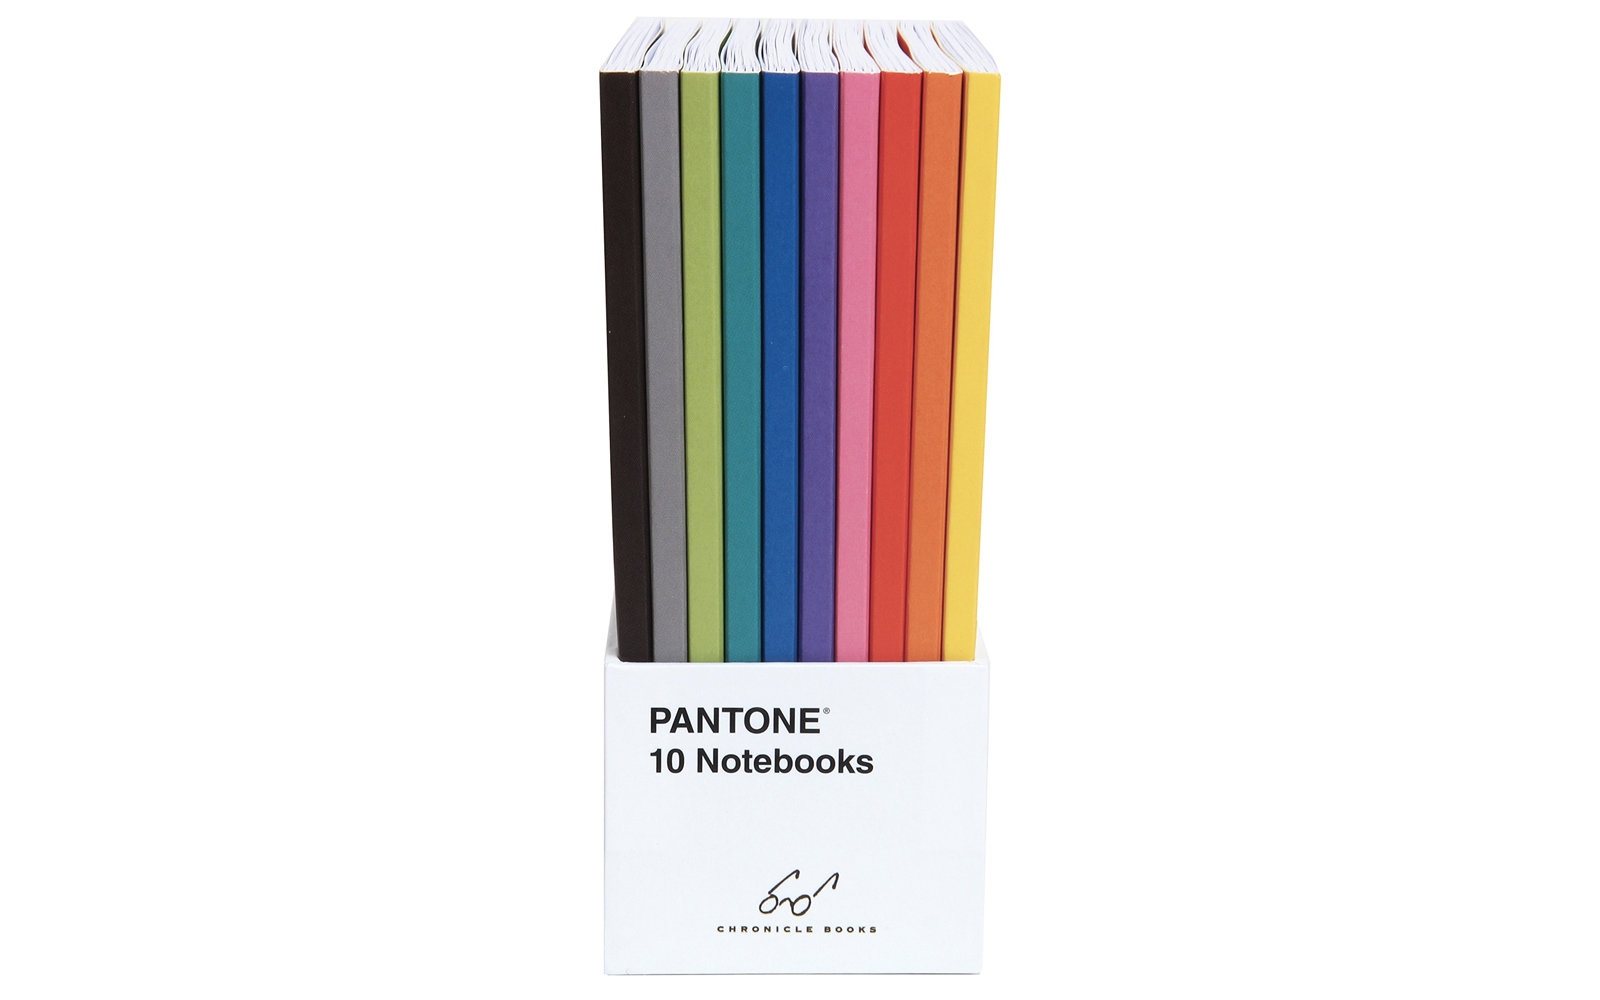 Pantone Notebooks